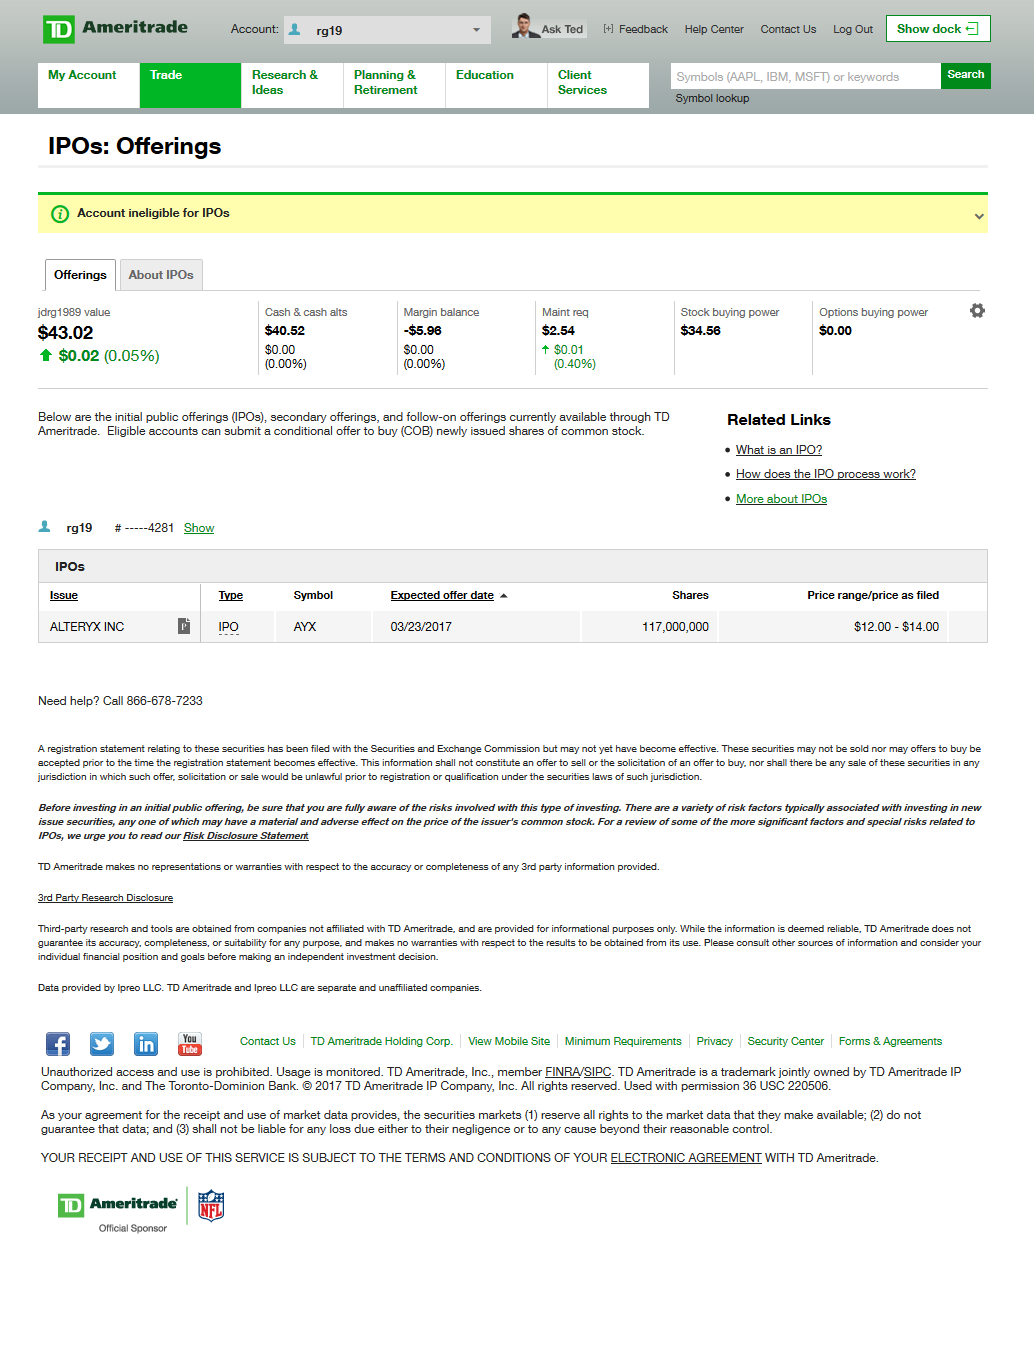 example of IPOs offering on a TD Ameritrade account